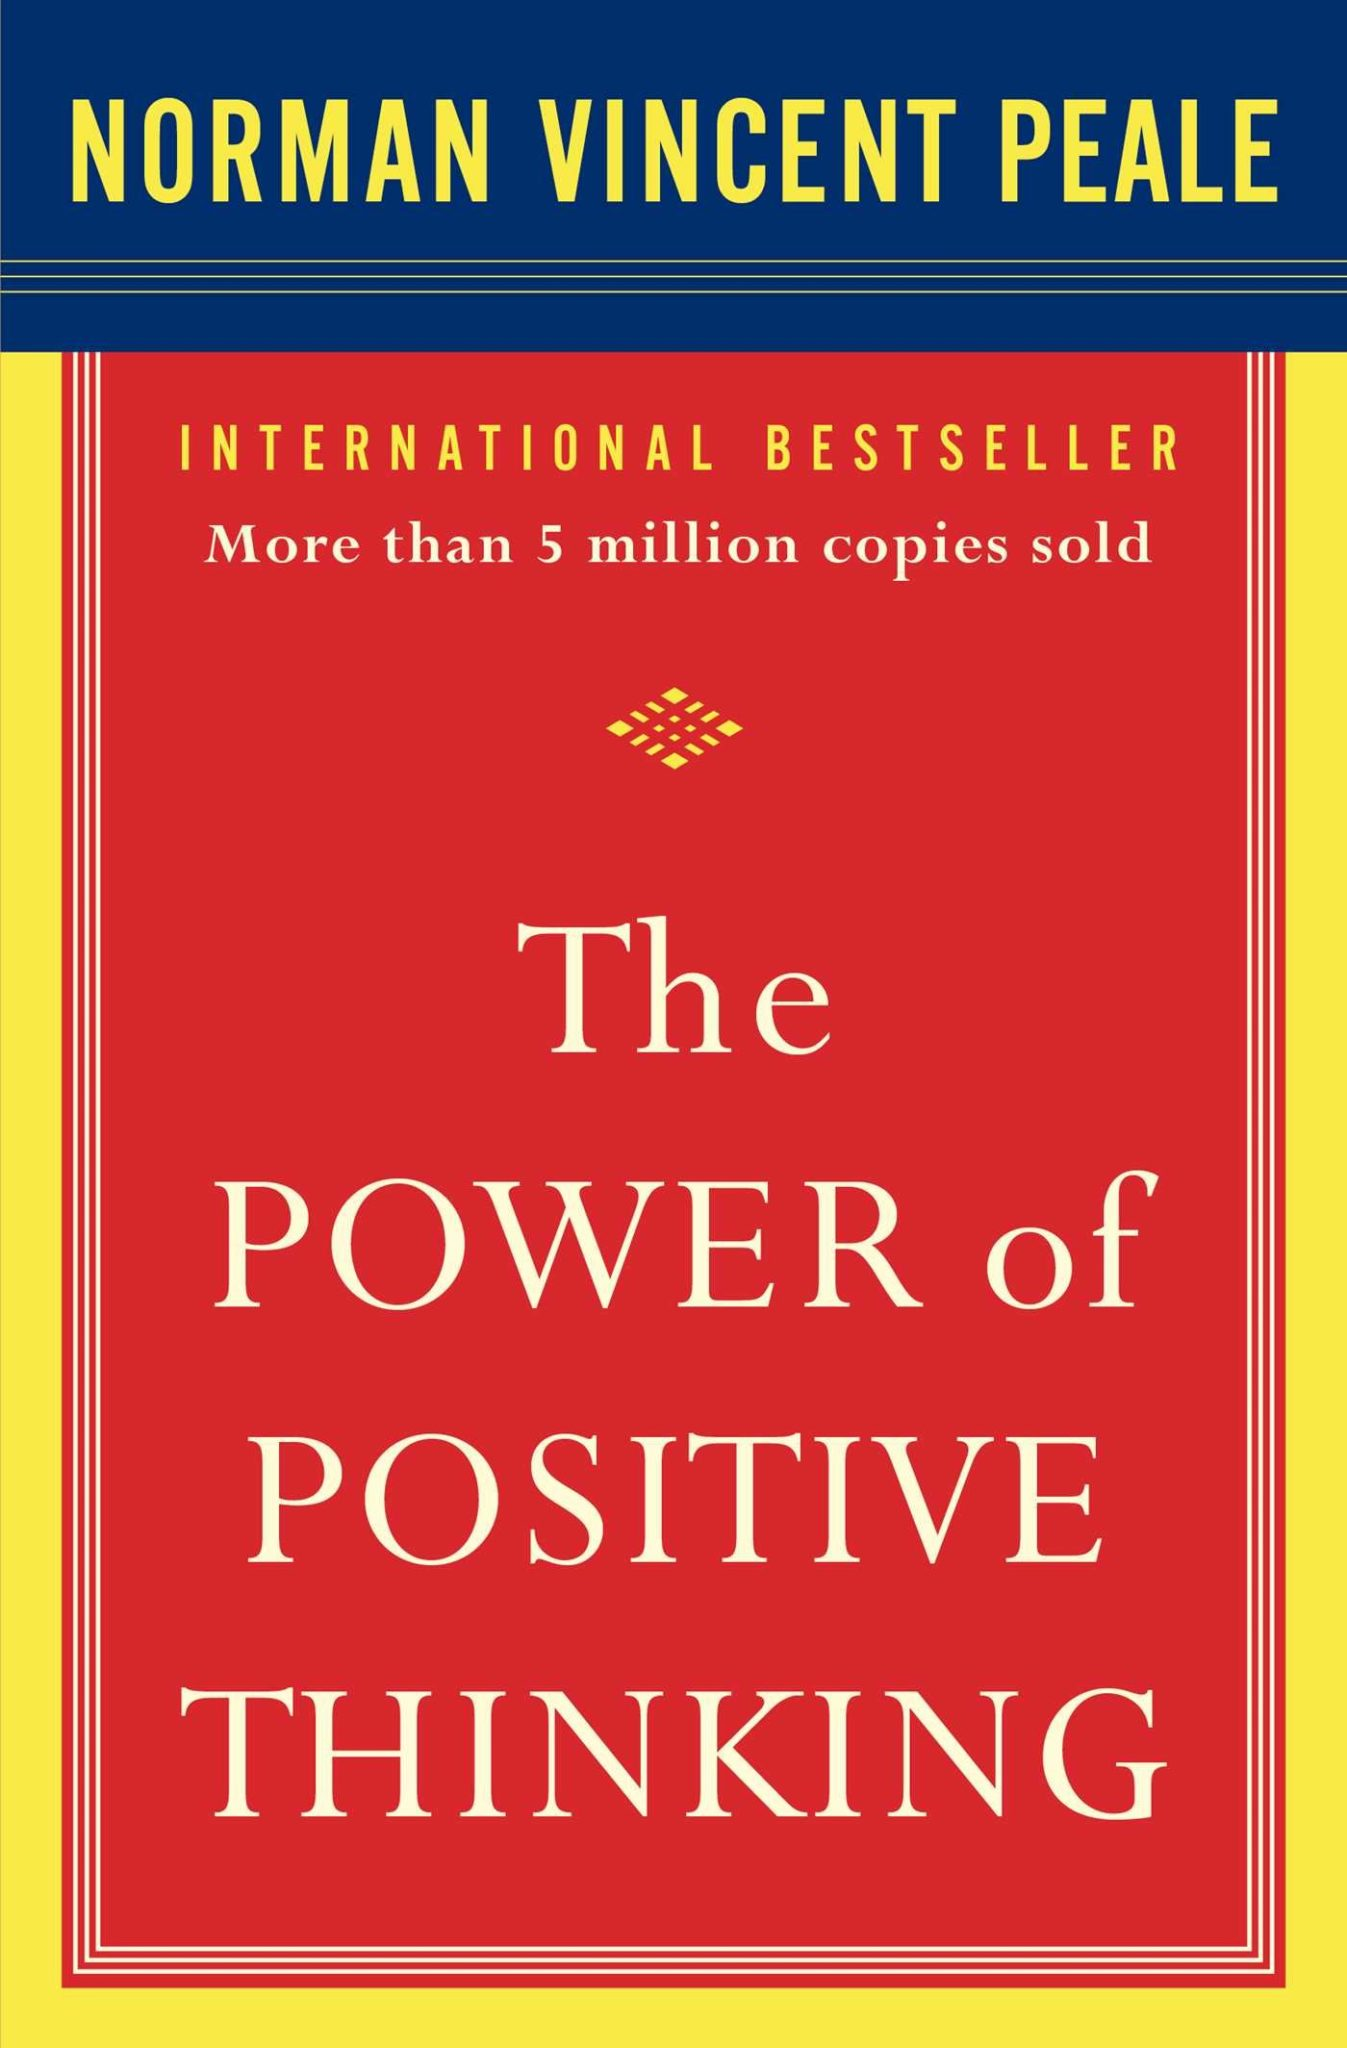 the-power-of-positive-thinking-norman-vincent-peale